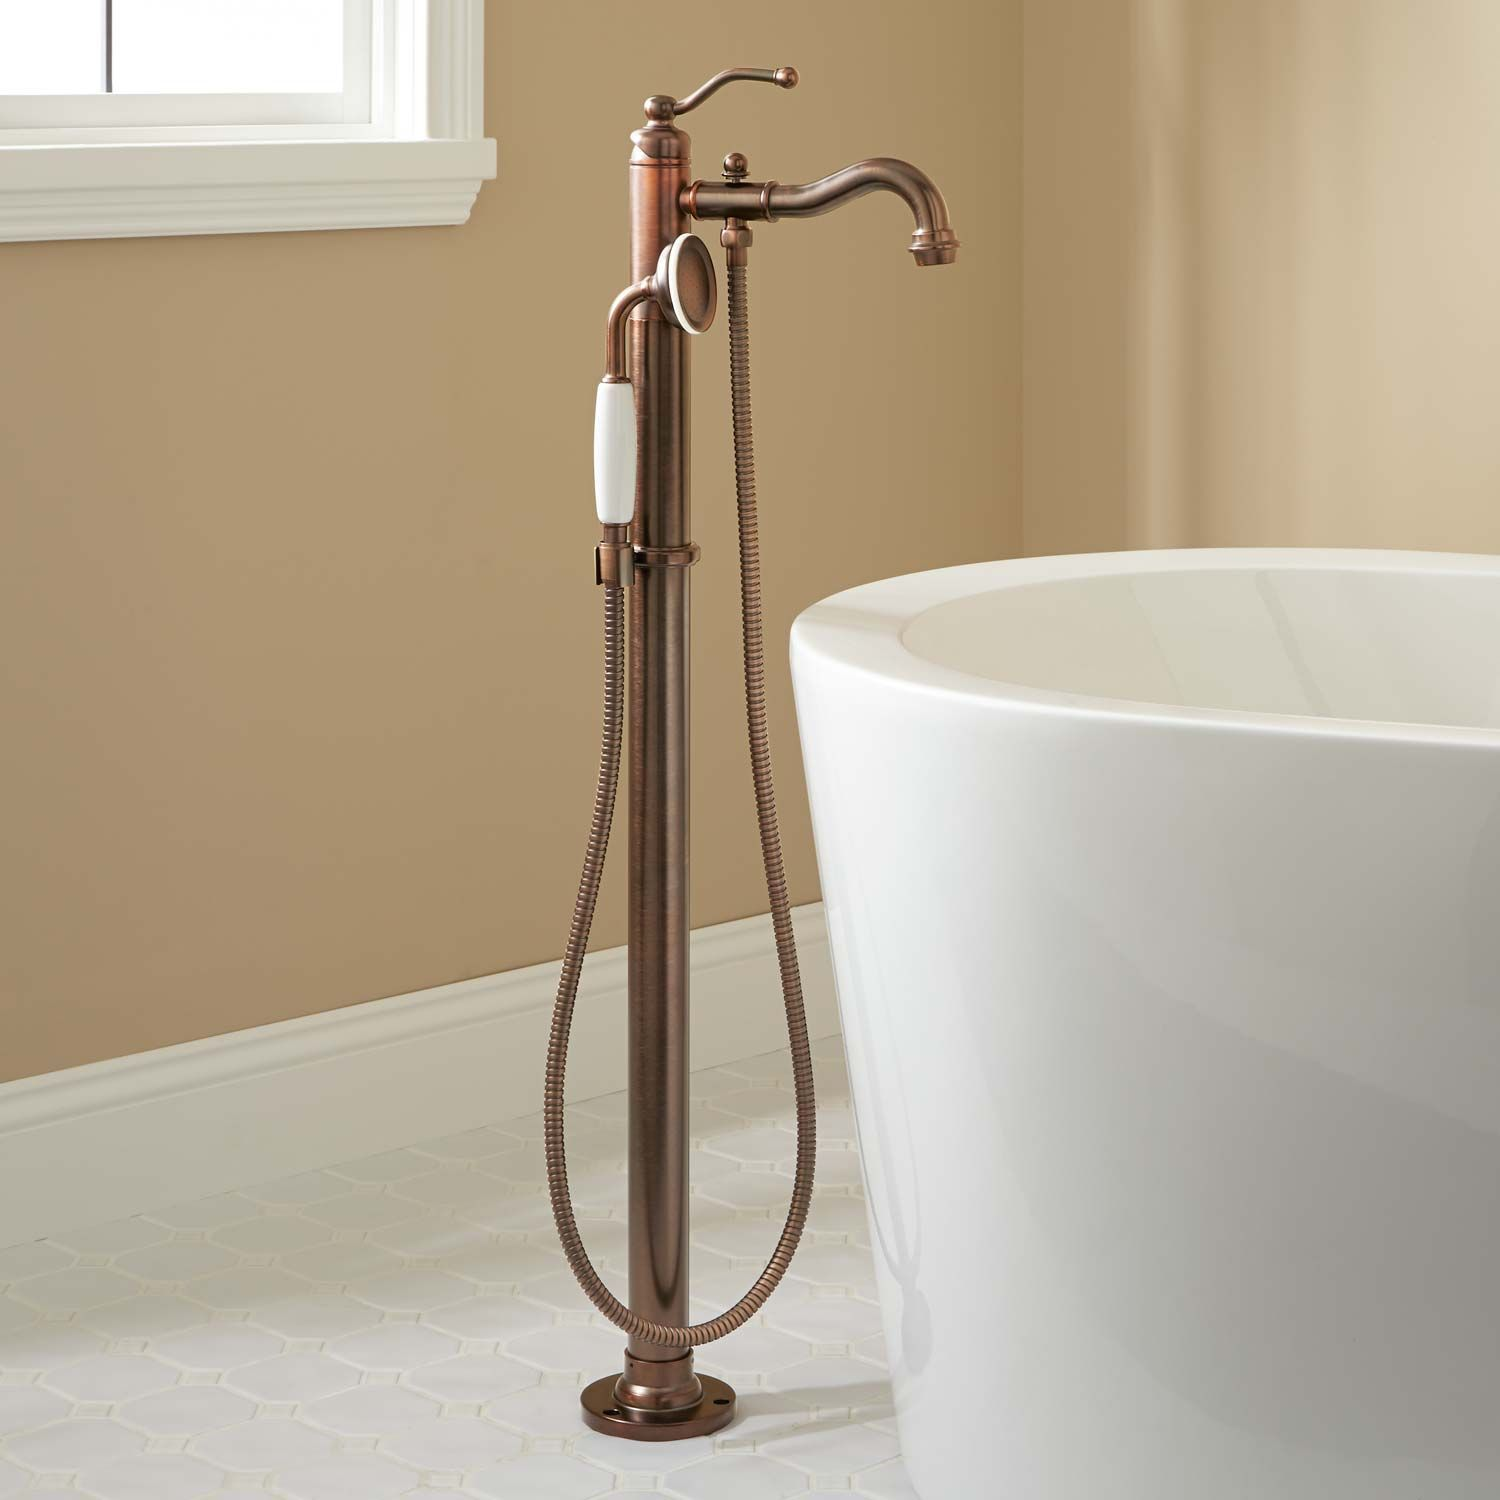 Sidonie Freestanding Tub Faucet With Hand Shower Freestanding Tub Faucet Clawfoot Tub Faucet Free Standing Tub